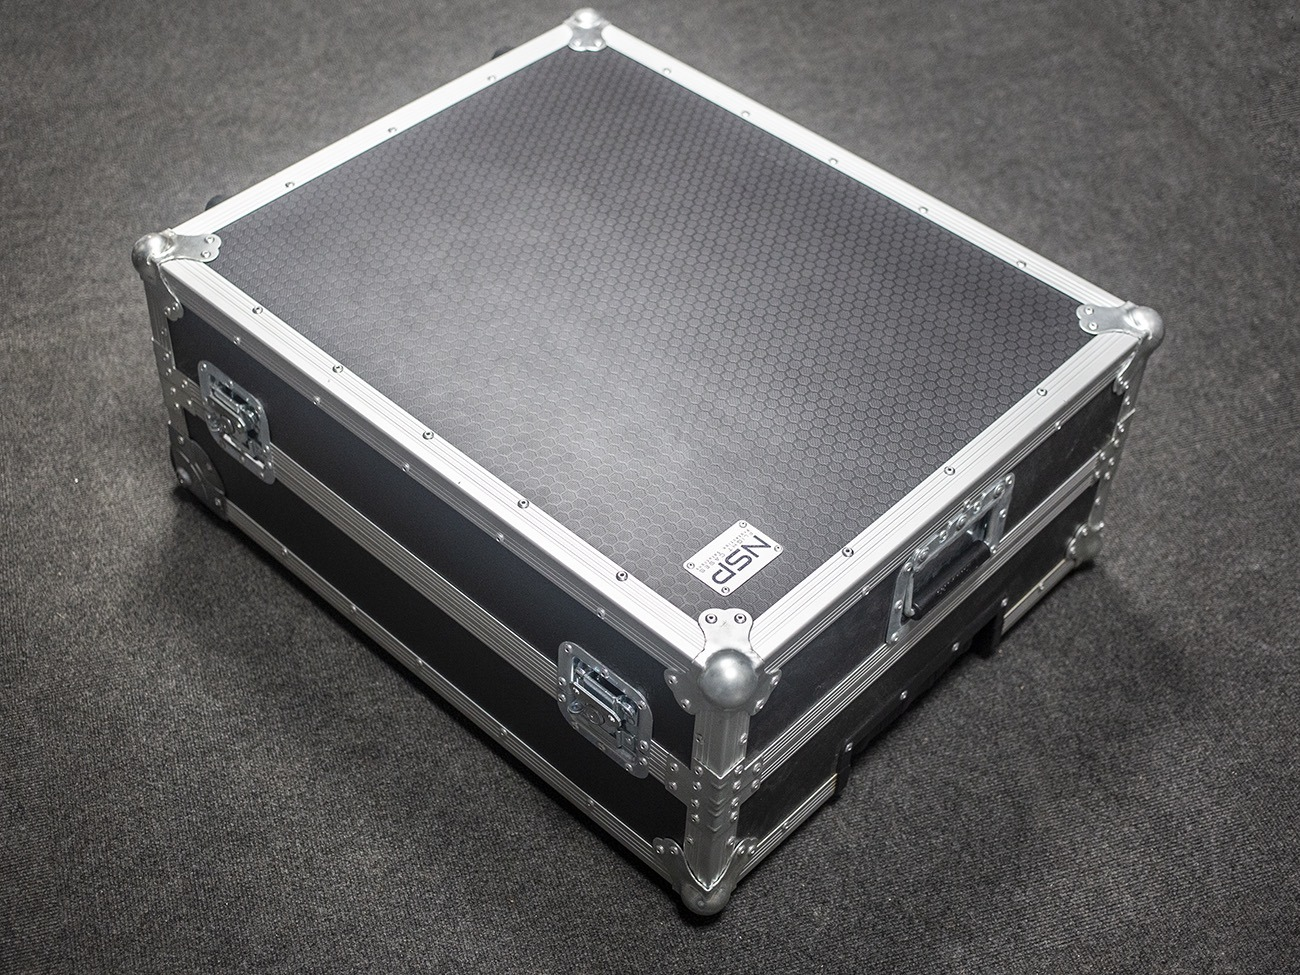 timeless design a2e57 1bf2b iMac 27 inch Travel and Flight case with wheels